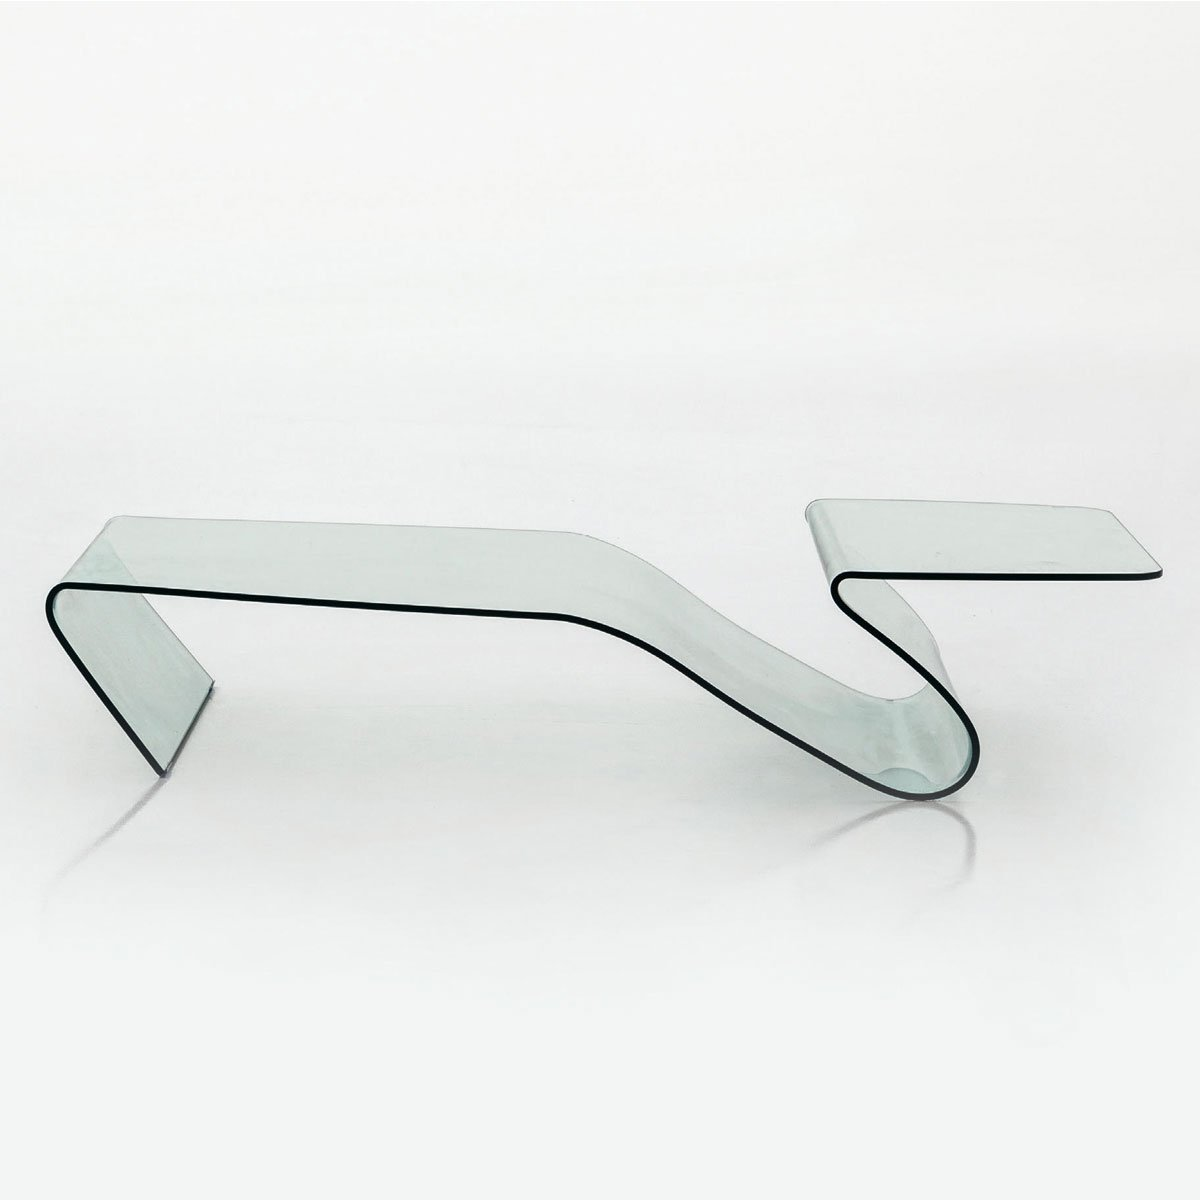 Alaric Curved Glass Coffee Table Klarity Glass Furniture